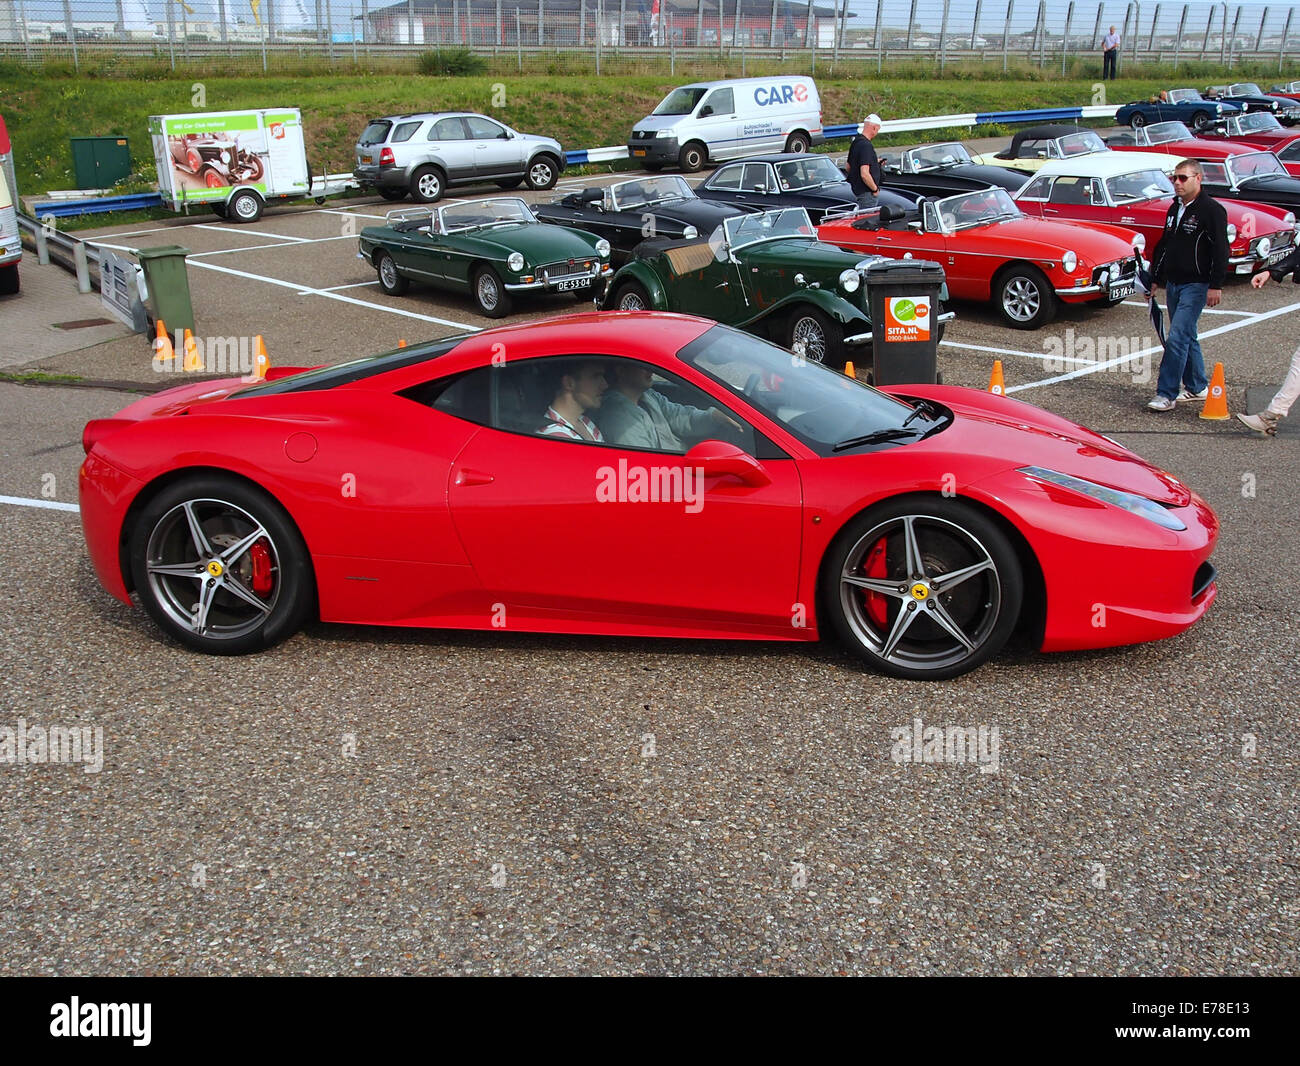 Red Ferrari 458 Spider Fotos E Imagenes De Stock Alamy